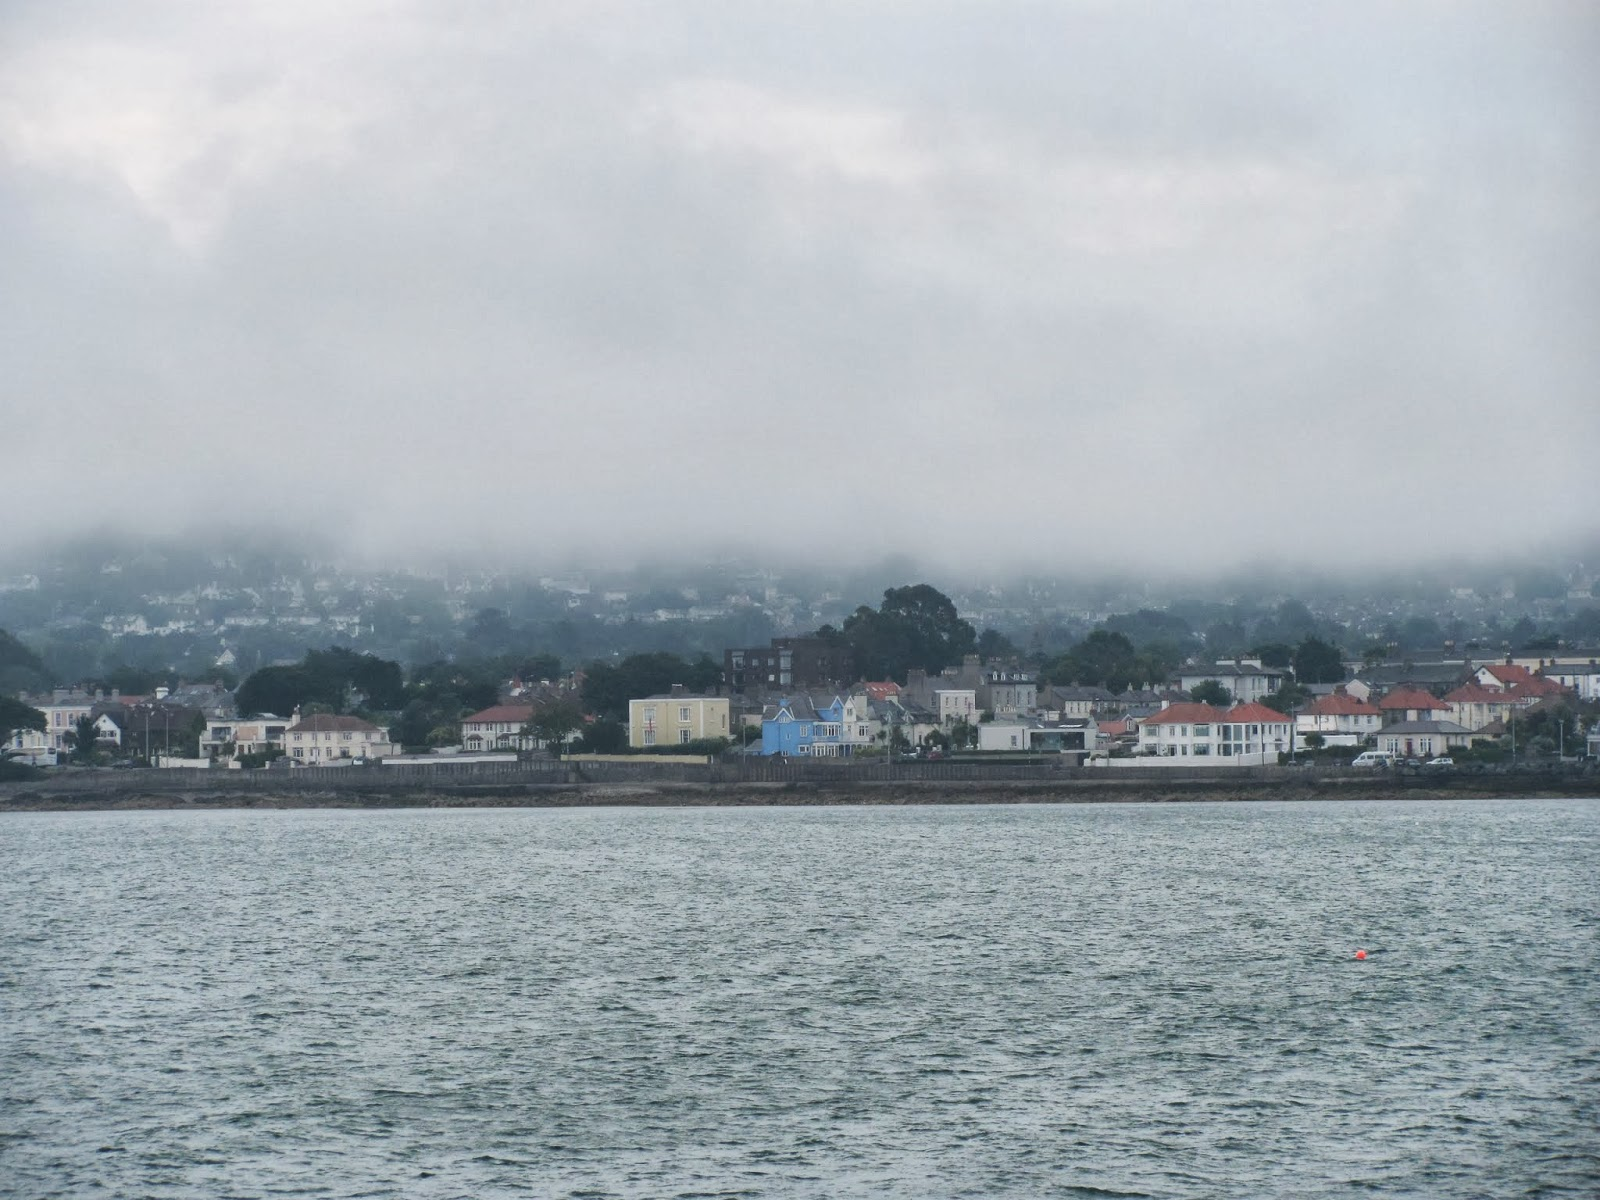 Fog rolls down from the hill over the village at Dun Laoghaire, Co. Dublin, Ireland